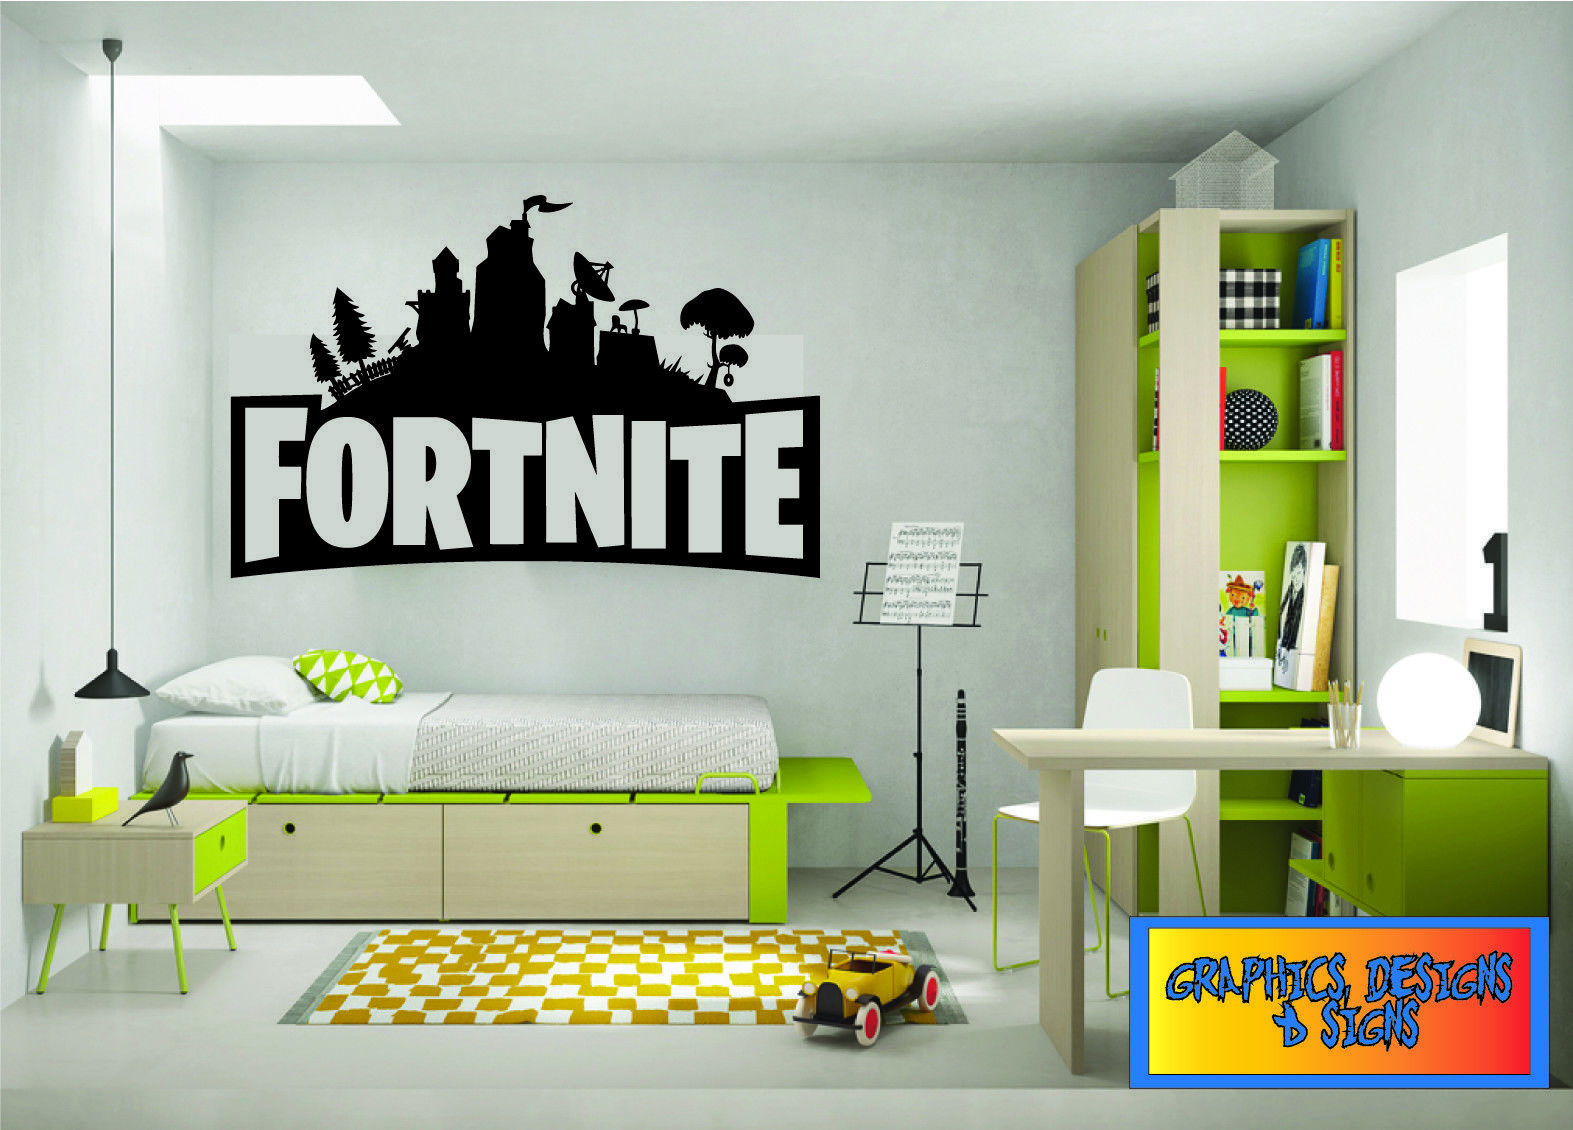 Childrens wall stickers fortnite gaming bedroom art logo 3 fortnight xbox ps4 ebay